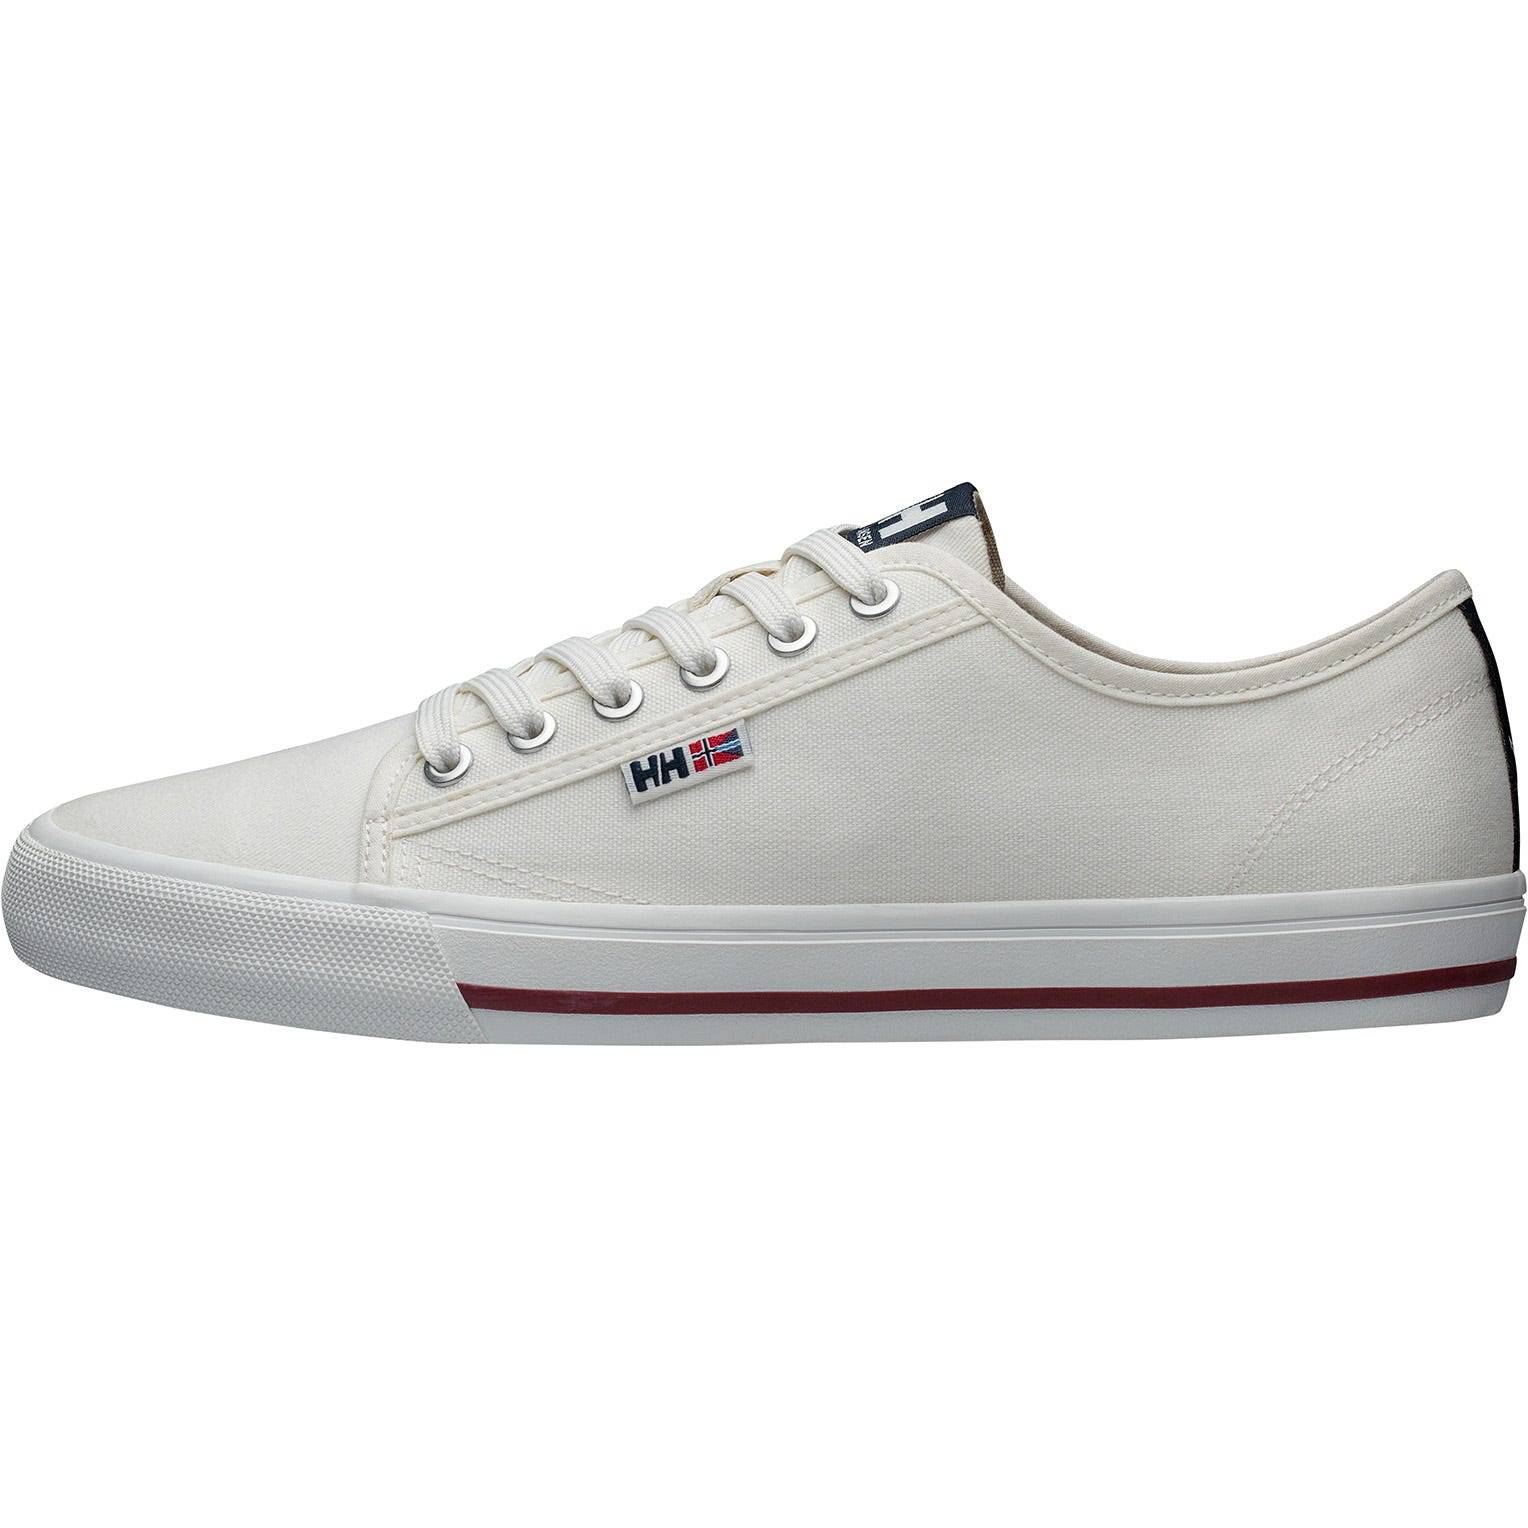 Helly Hansen Fjord Canvas Shoe V2 Mens Casual White 42.5/9